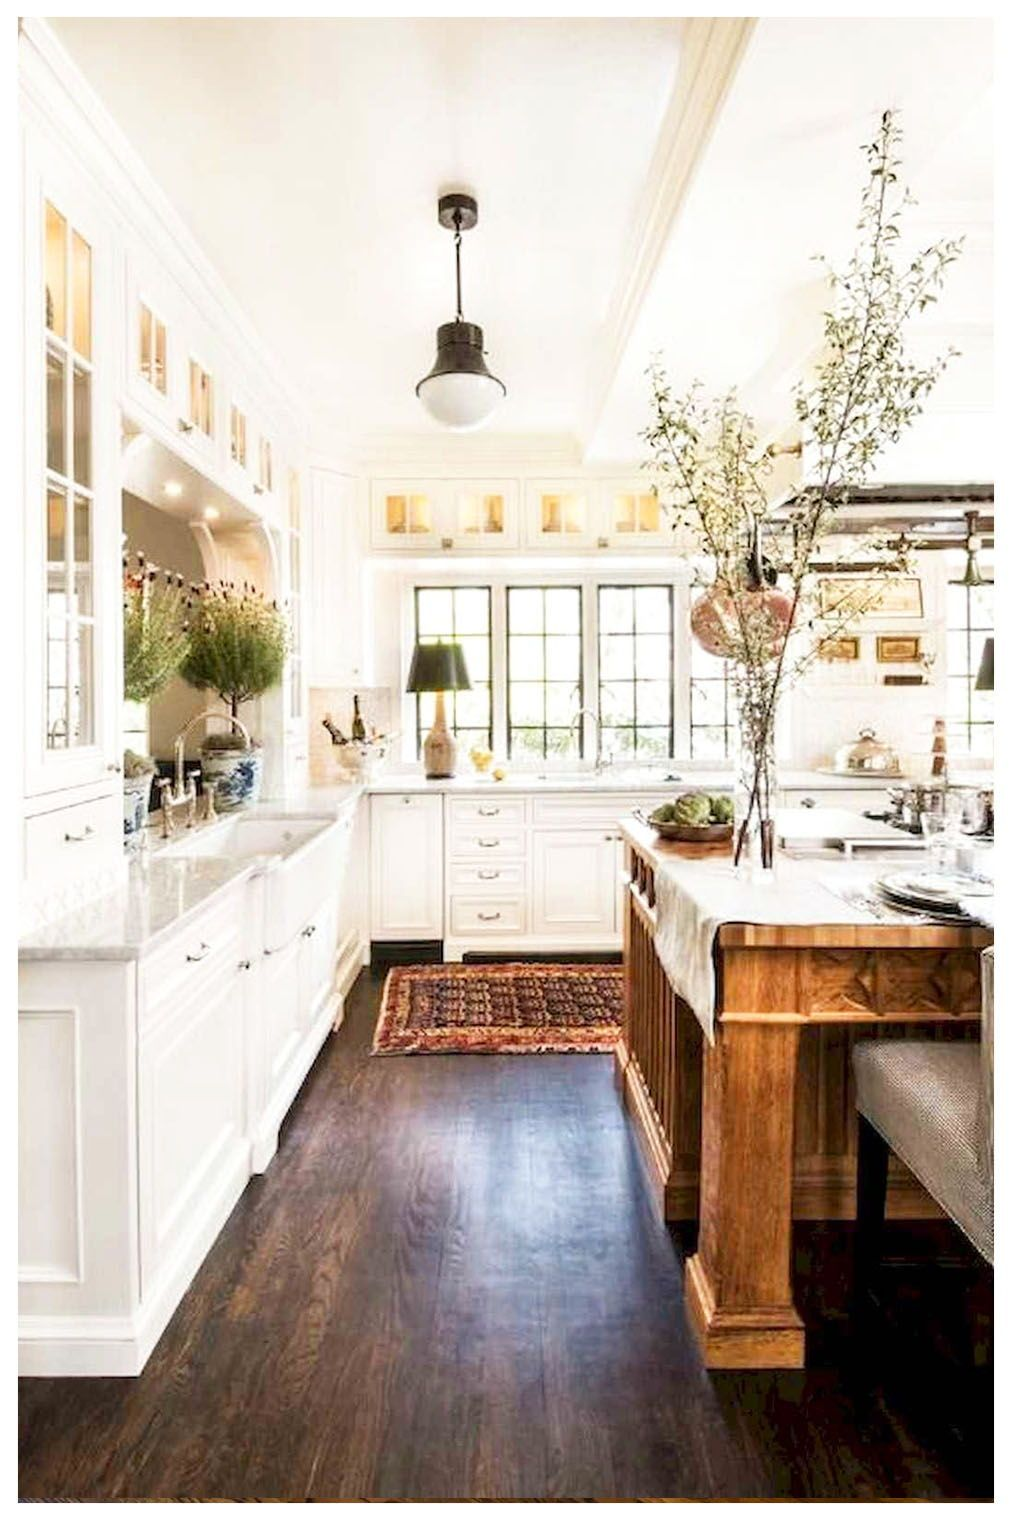 20+ Inspiring Traditional Kitchen Design Ideas ( How To Element Design)